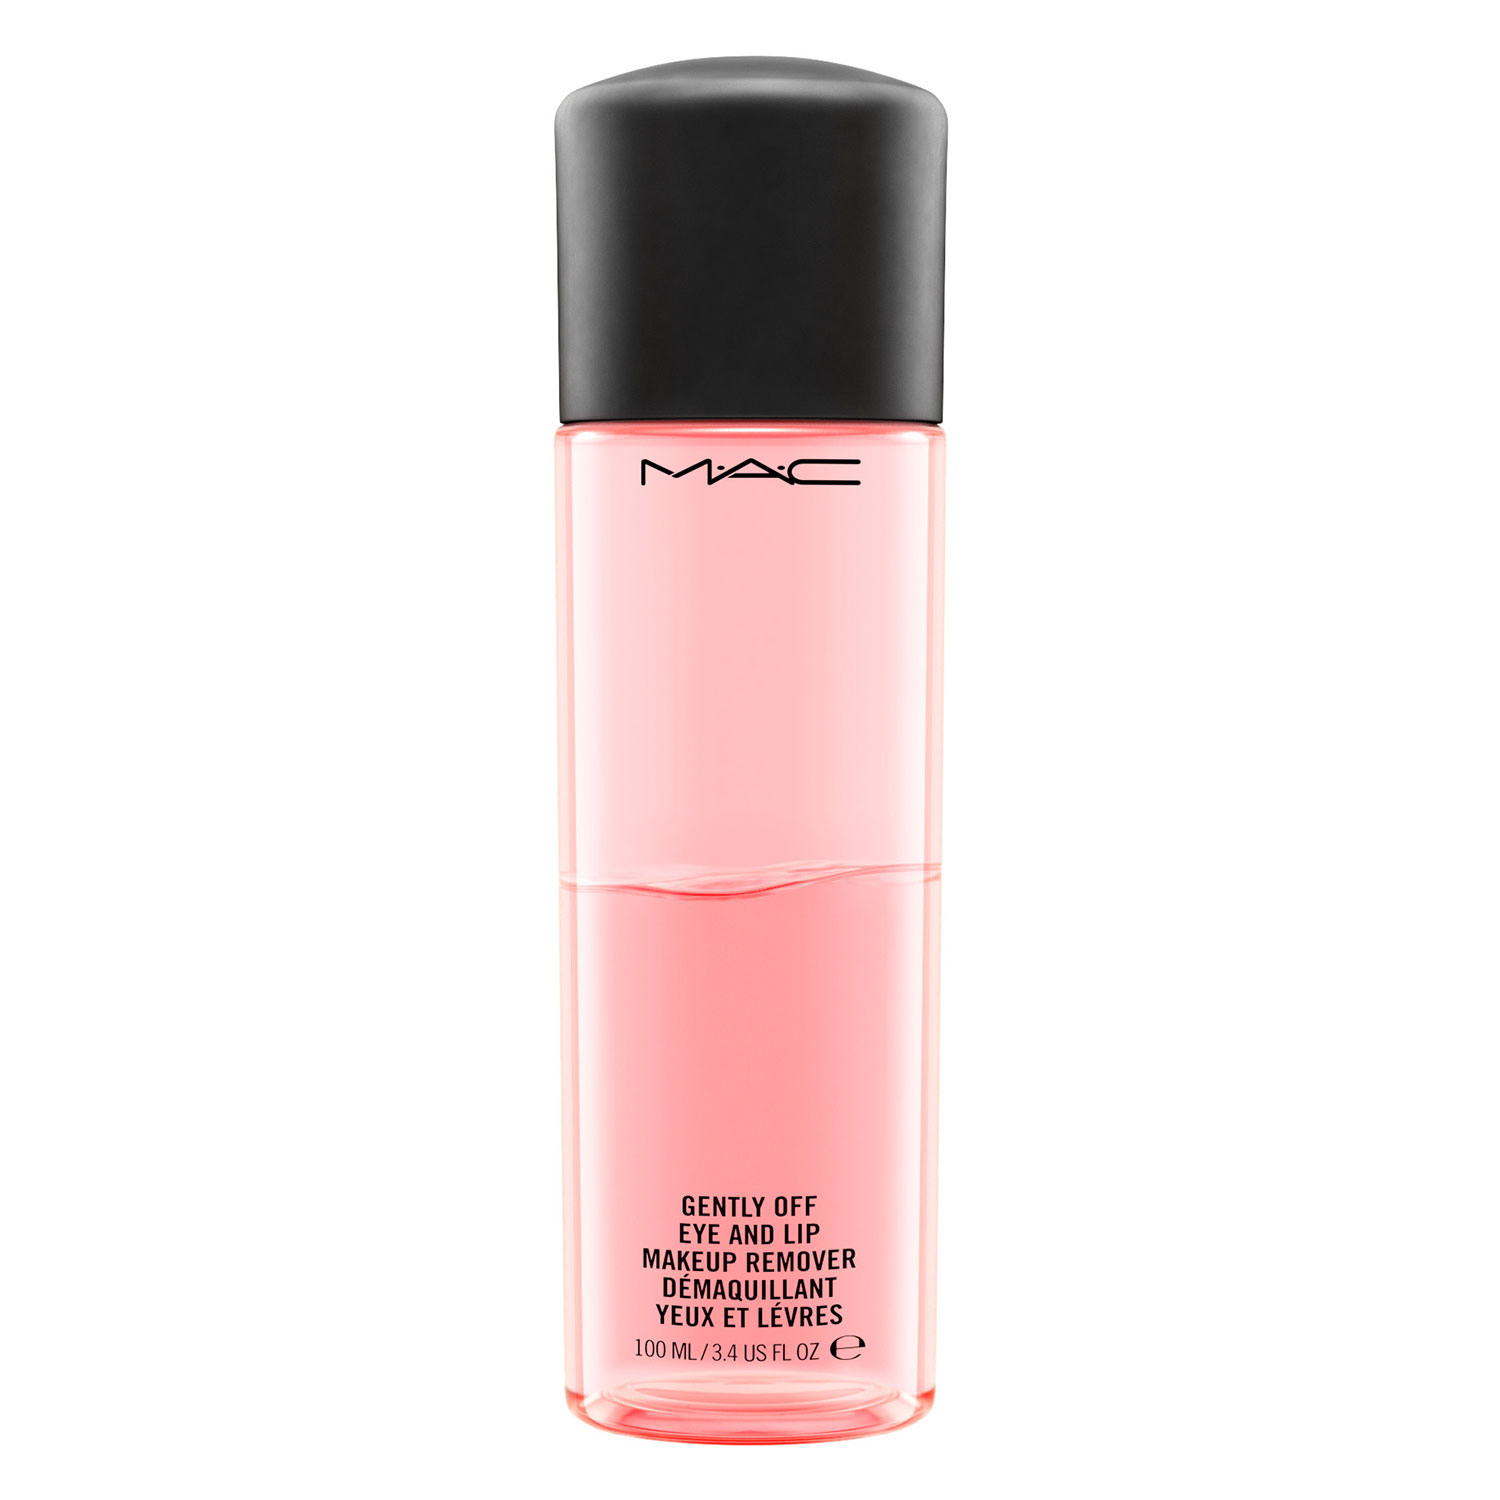 M·A·C Skin Care - Gently Off Eye and Lip Makeup Remover